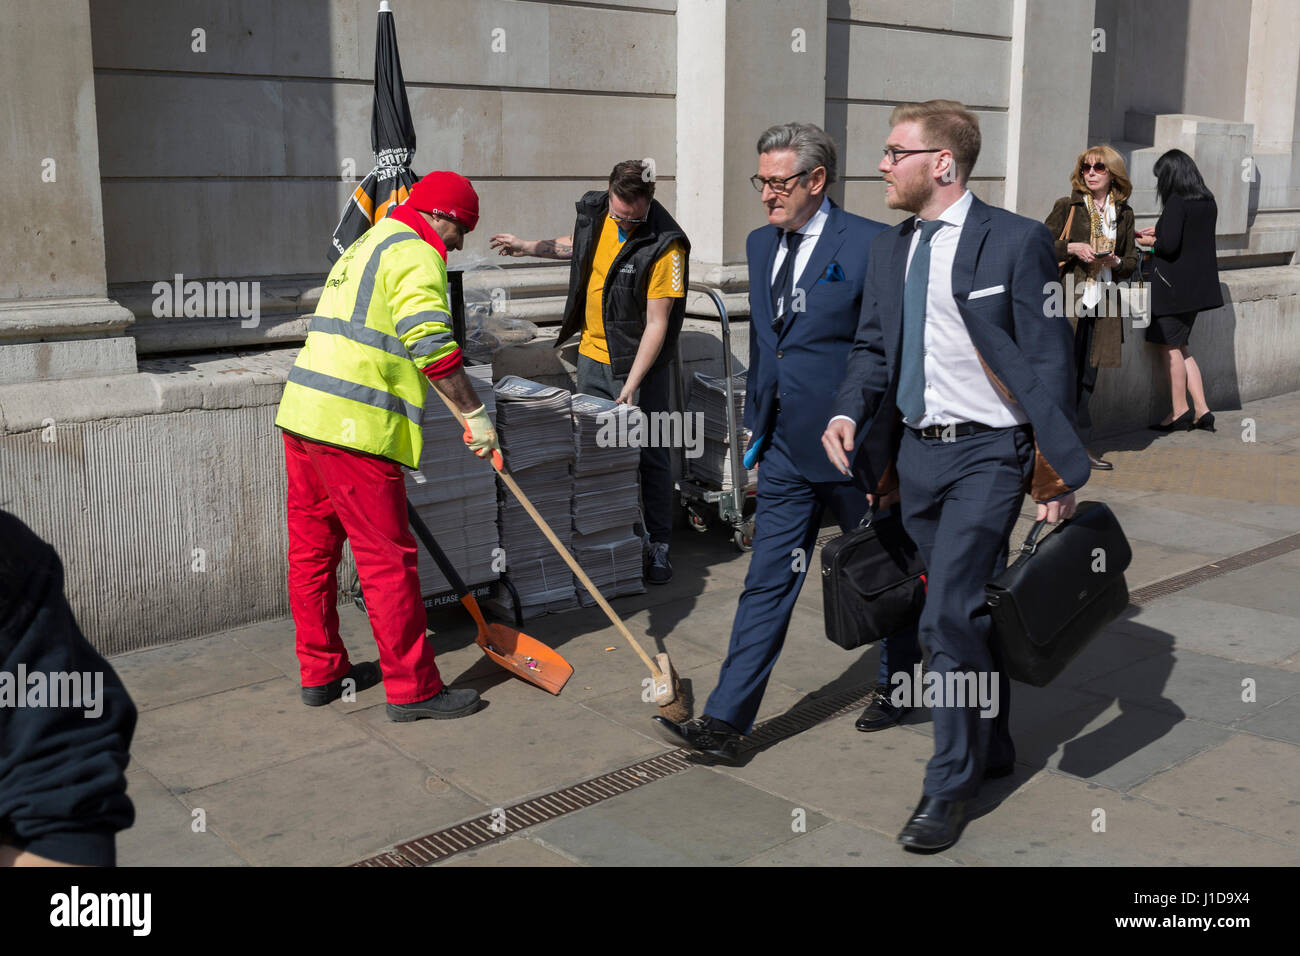 City workers walk past an Evening Standard distributor and a Corporation of London street sweeping contractor. - Stock Image